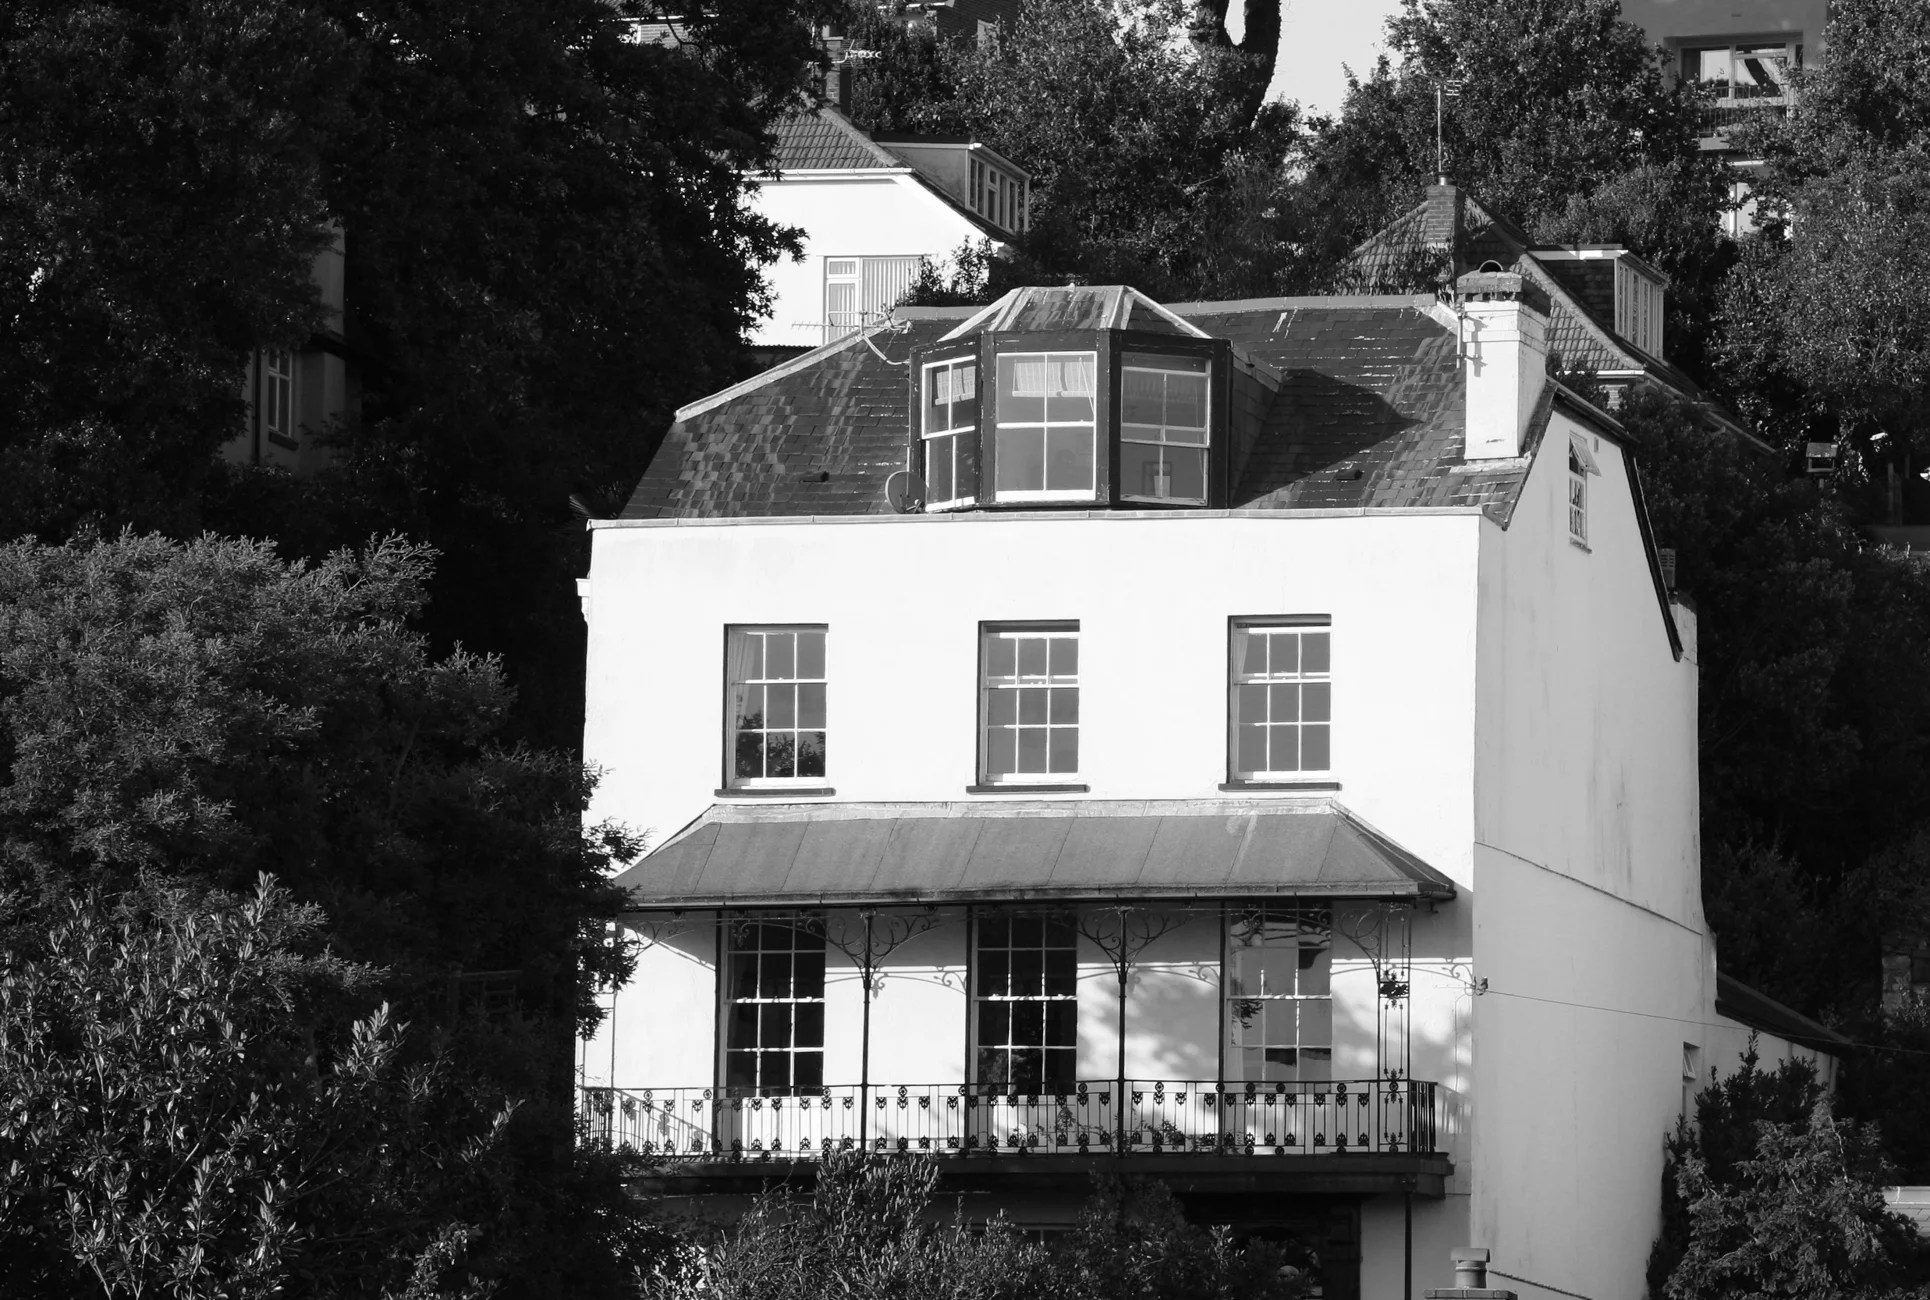 Bed And Breakfast Budleigh Salterton Bed Breakfast Lammas Park House Dawlish Trivago Co Uk